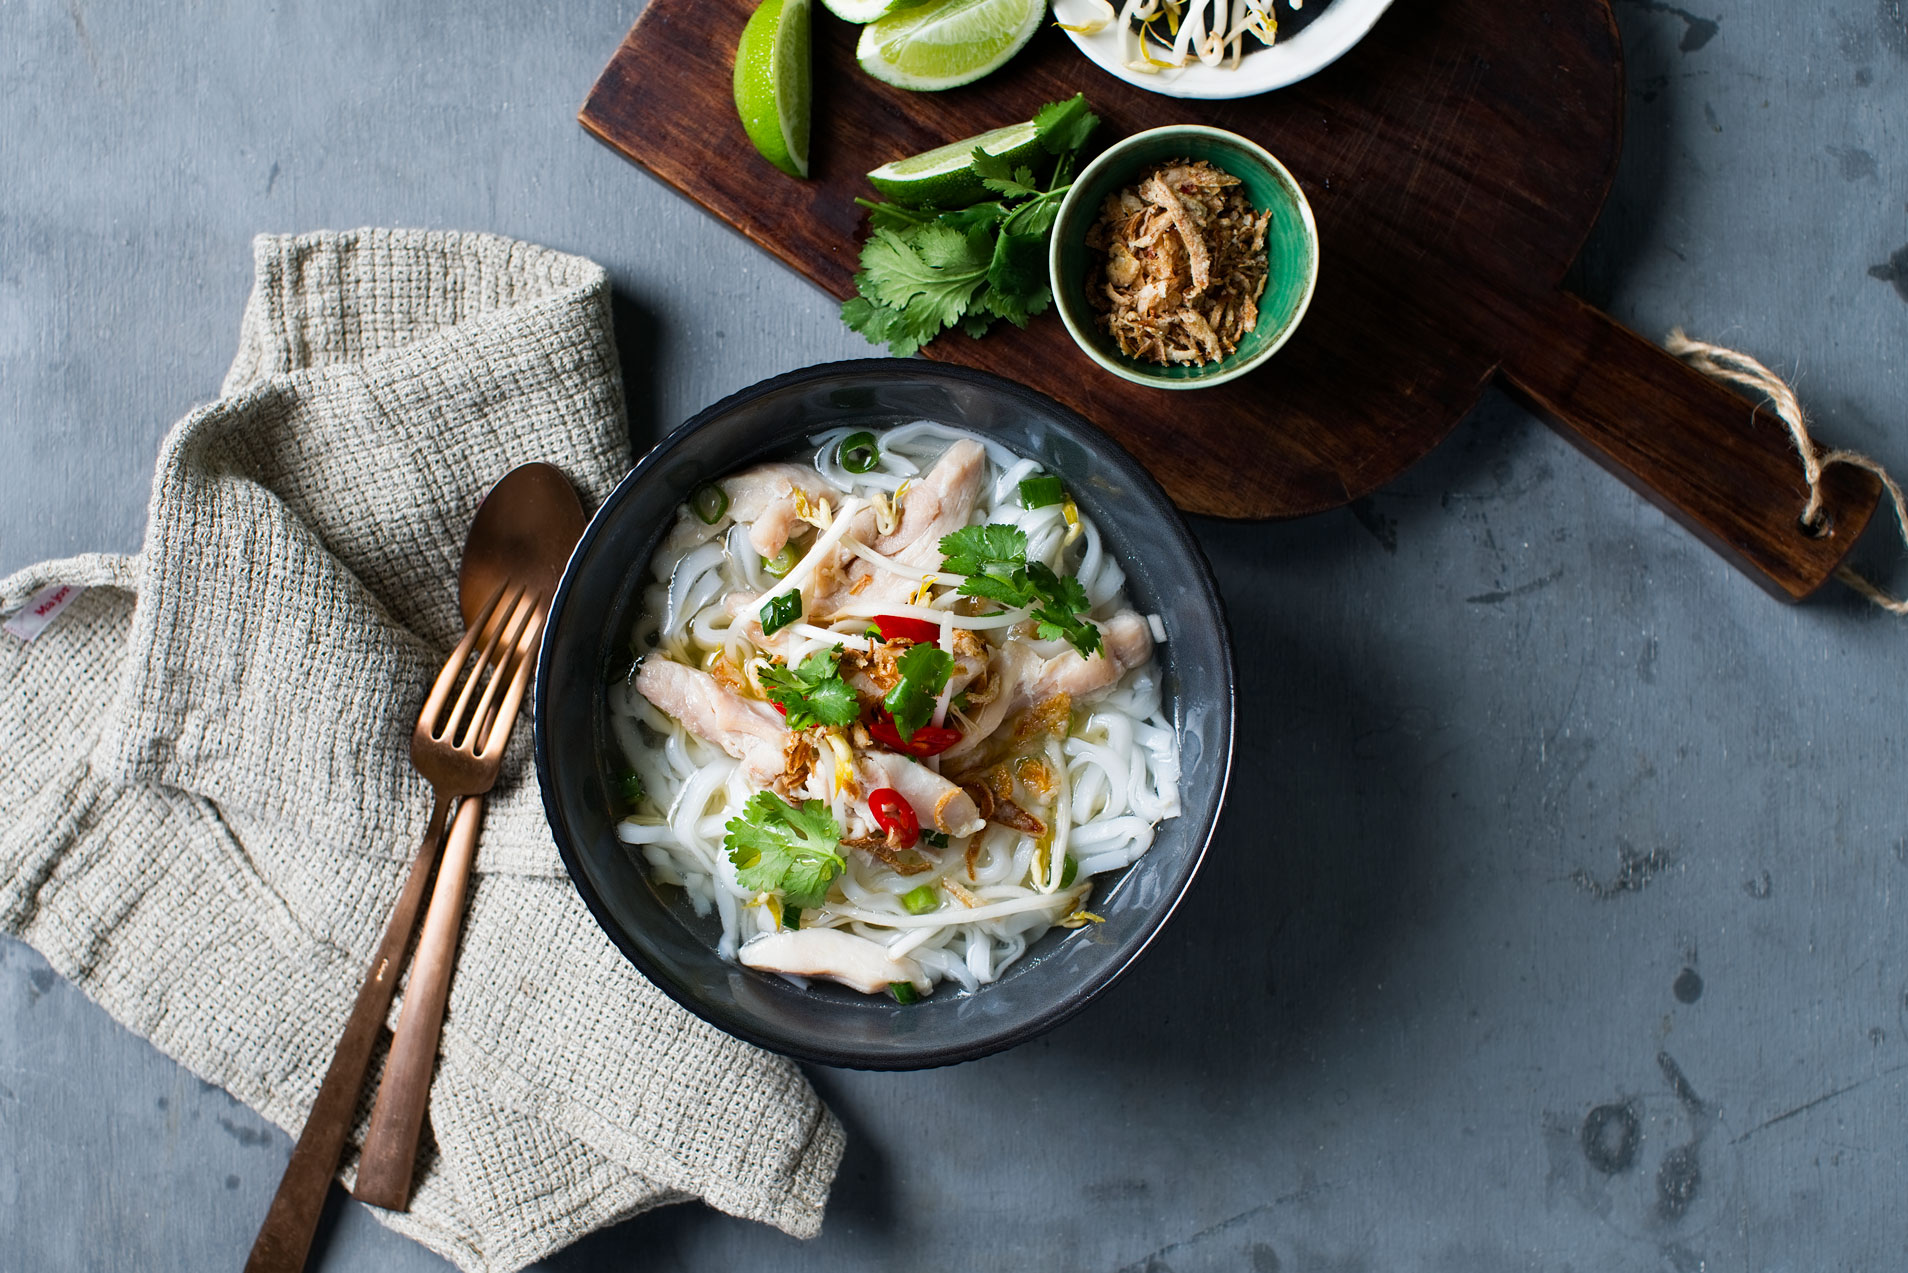 Phuong-Chicken-Noodle-Soup-CROPPED.jpg